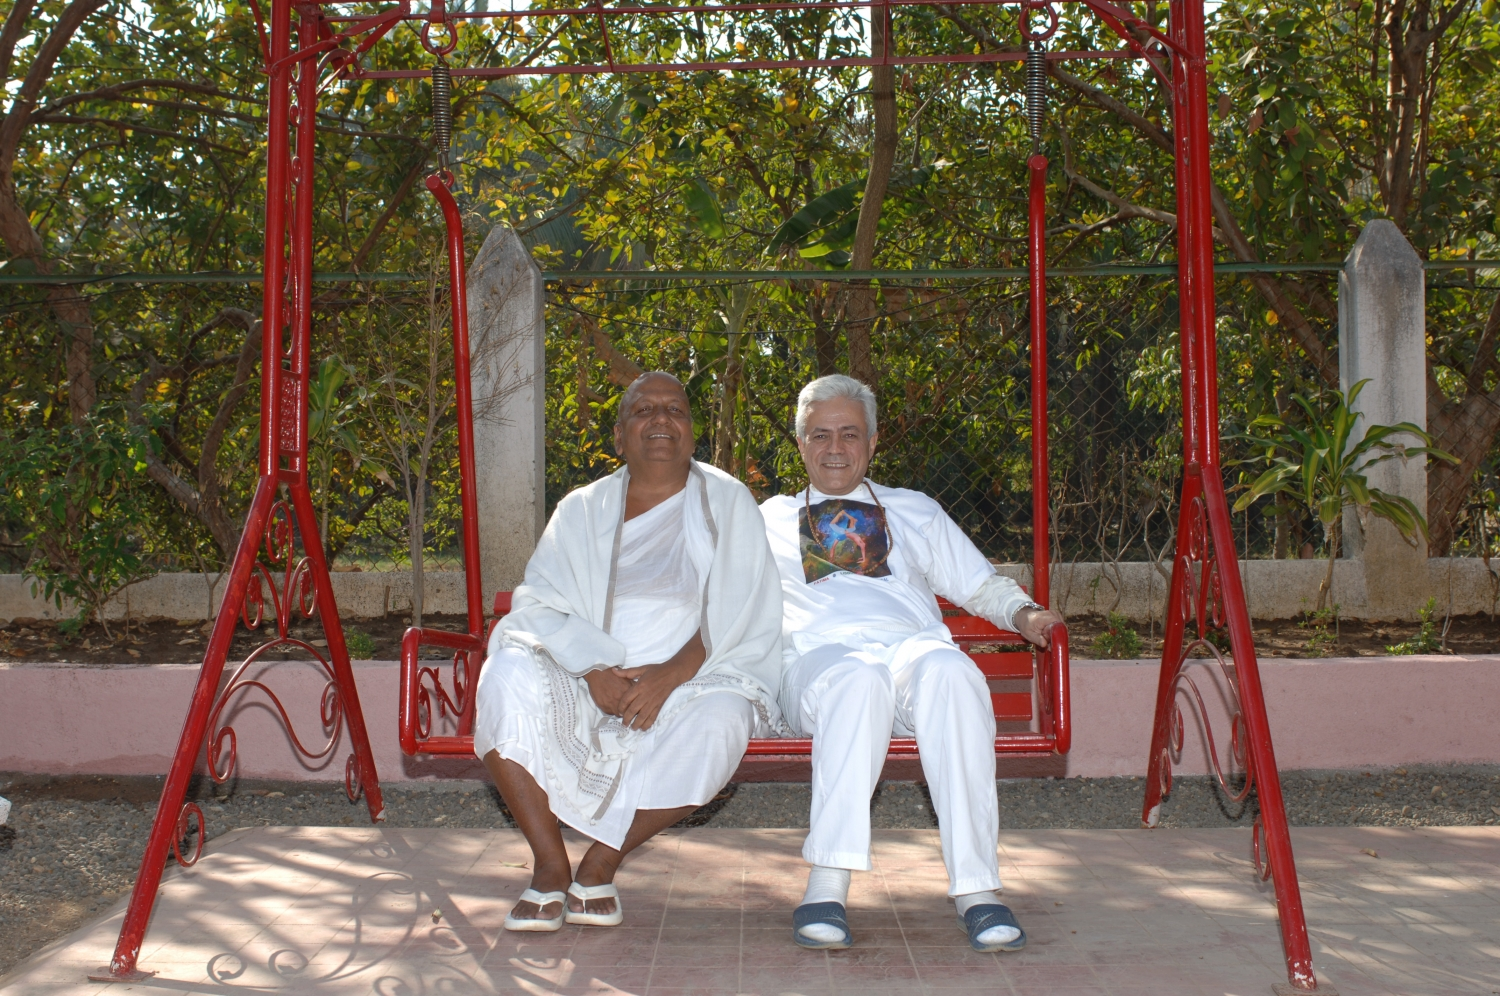 Meeting of H.H. Jagat Guru Amrta Súryánanda Mahá Rája with Shrí Svámin  Munishri Kirtichandrají, Founder of  Shantiniketan Áshrama - Valsad, India – 2008